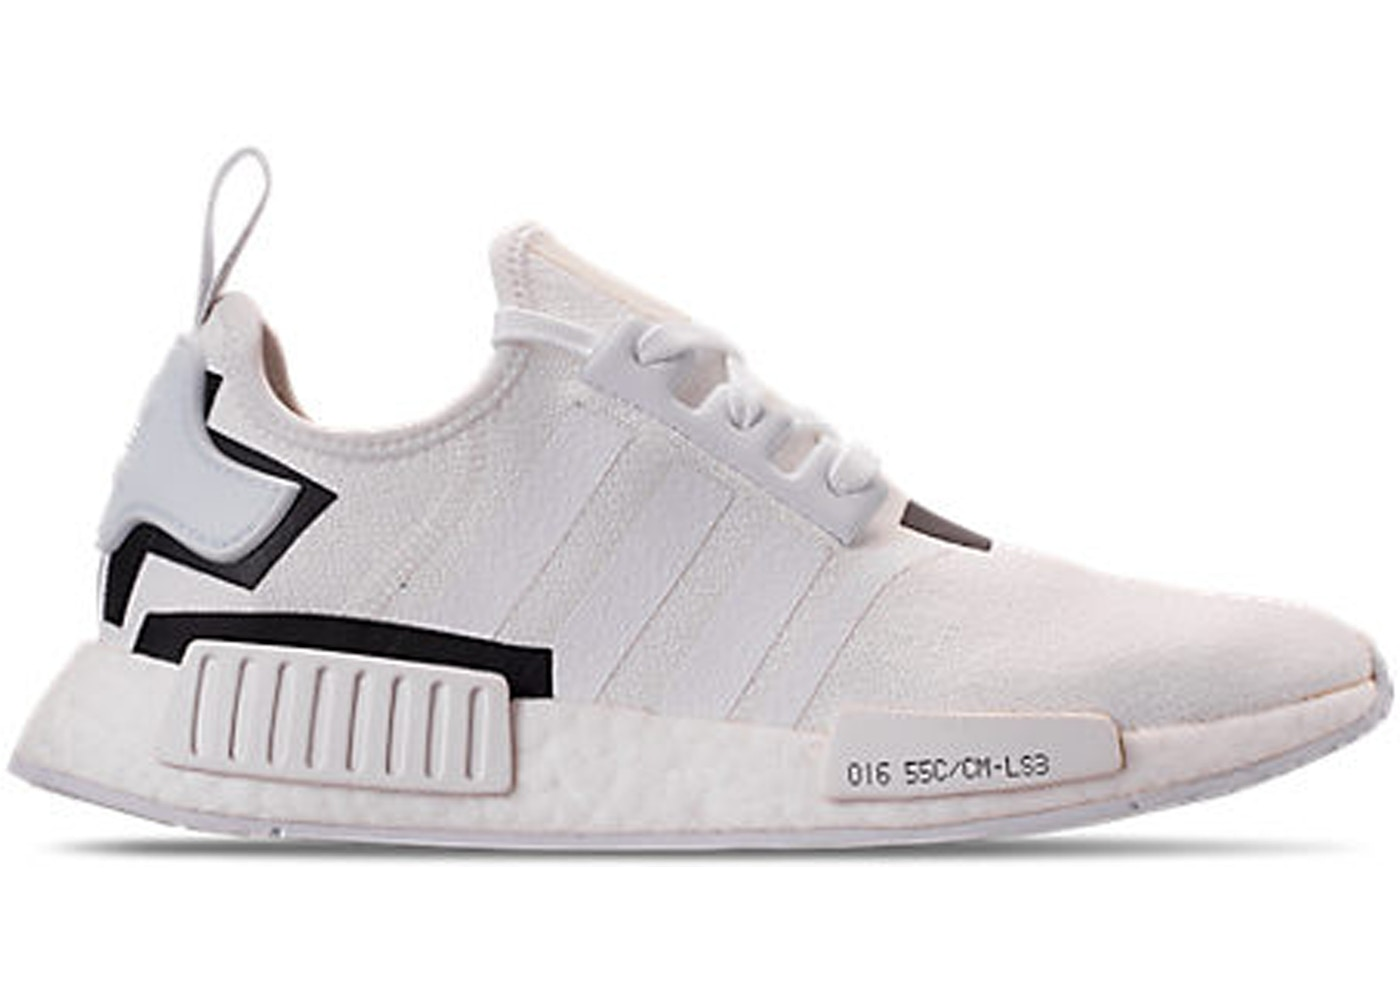 adidas nmd in white